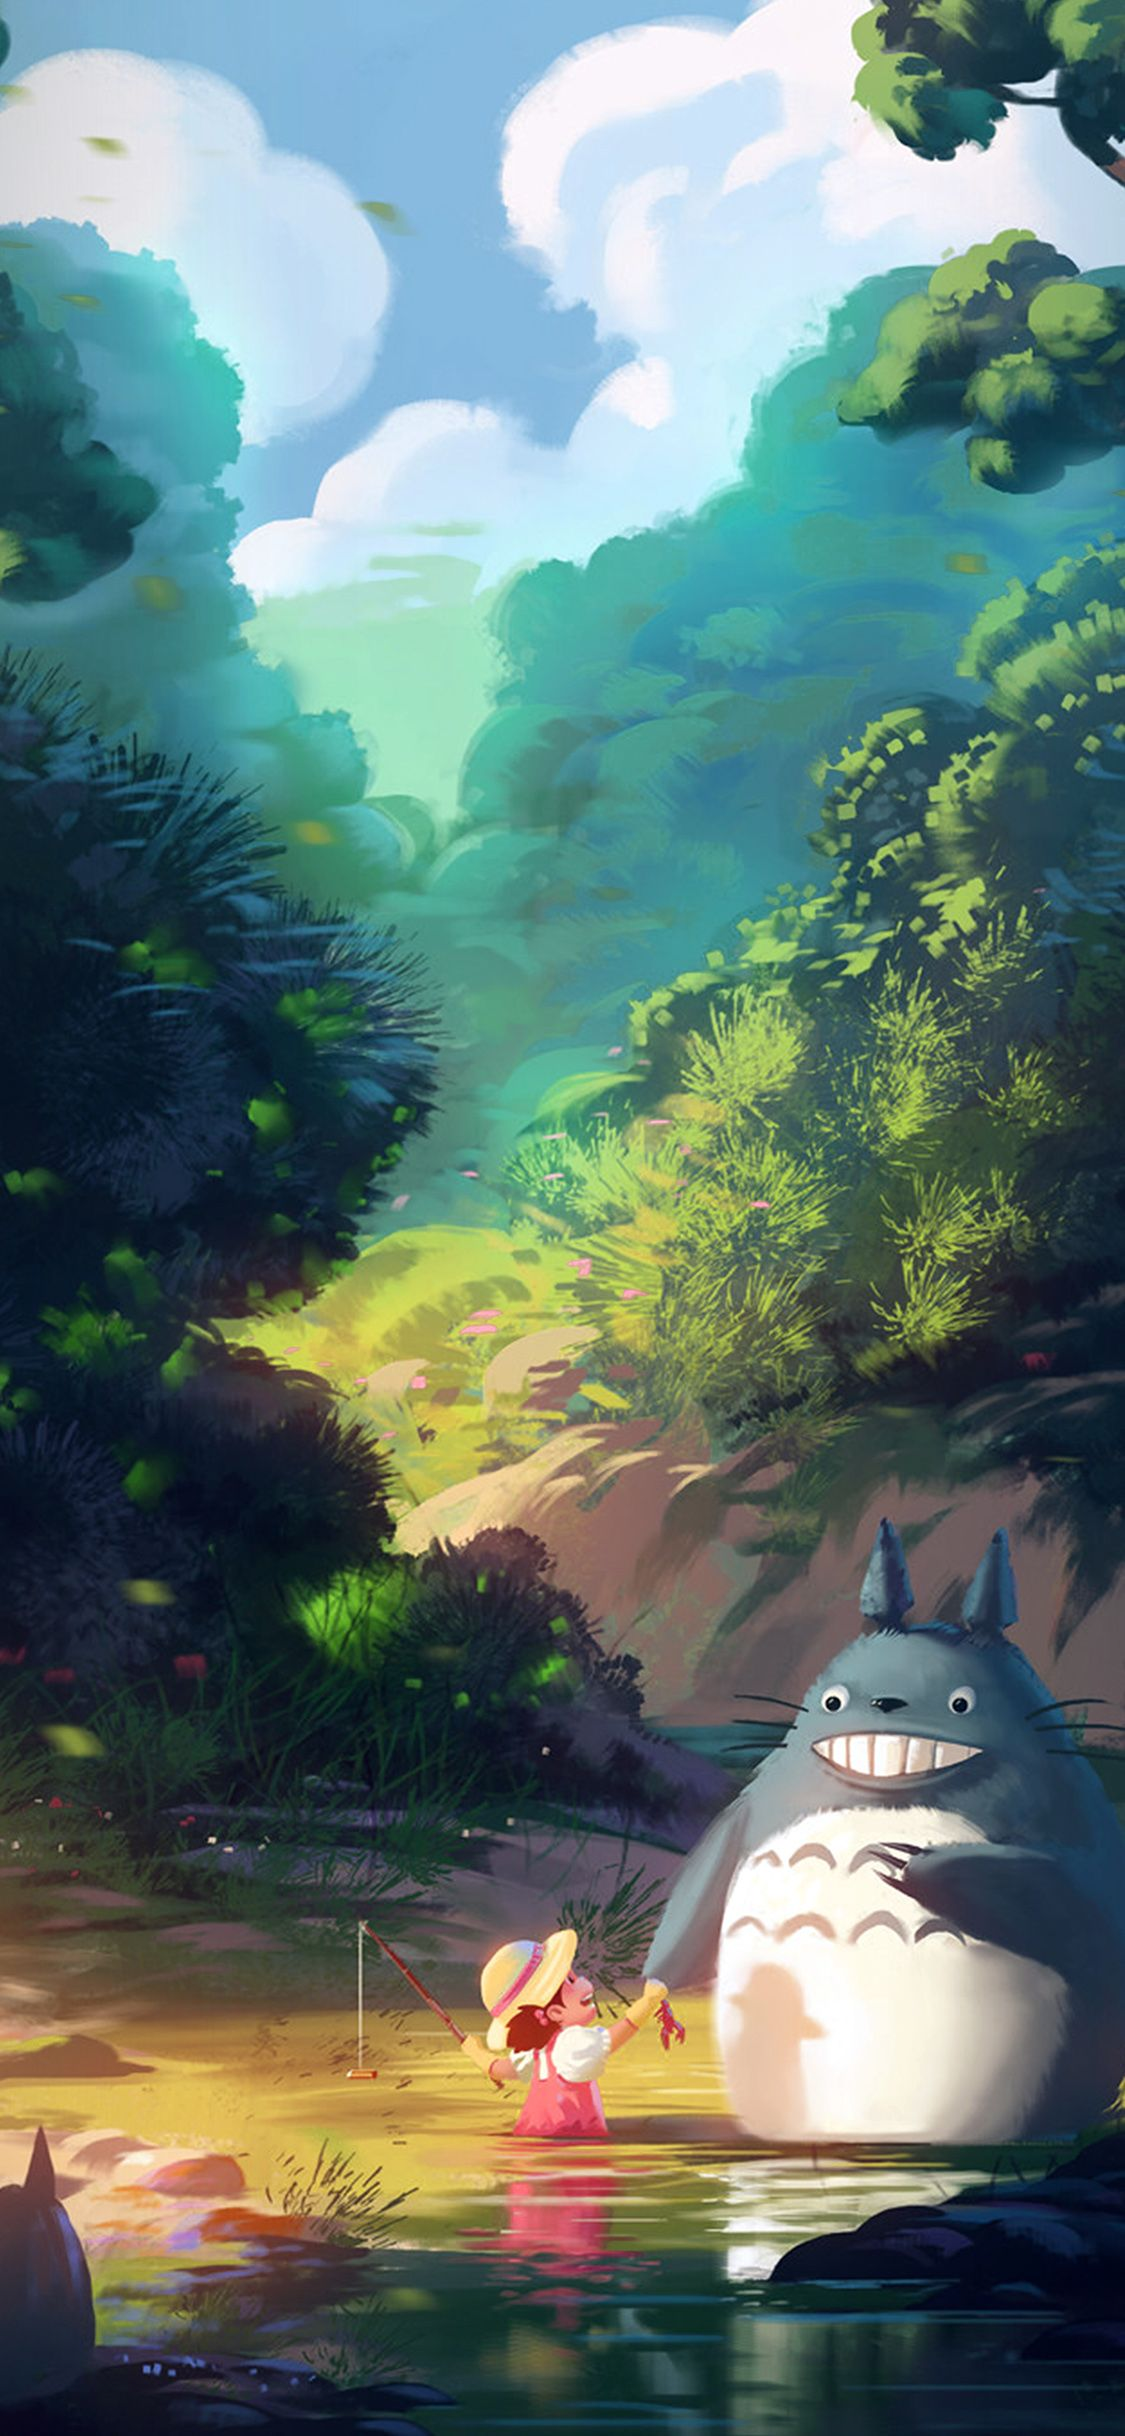 50 Best Free Totoro Iphone Wallpapers Wallpaperaccess